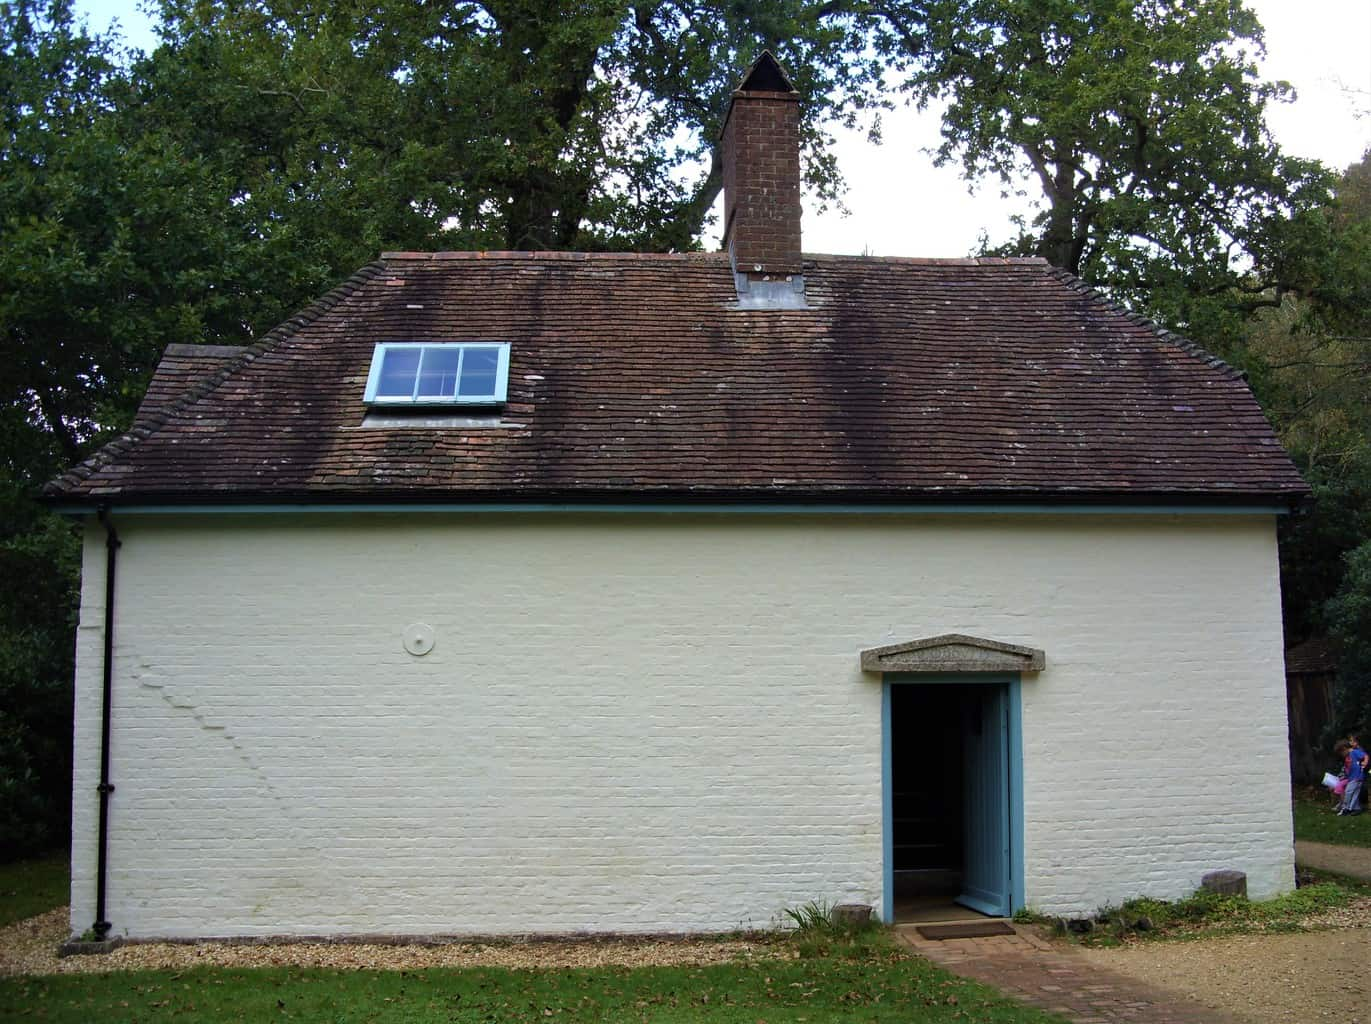 The outside of Clouds Hill showing just a door and an attic window.